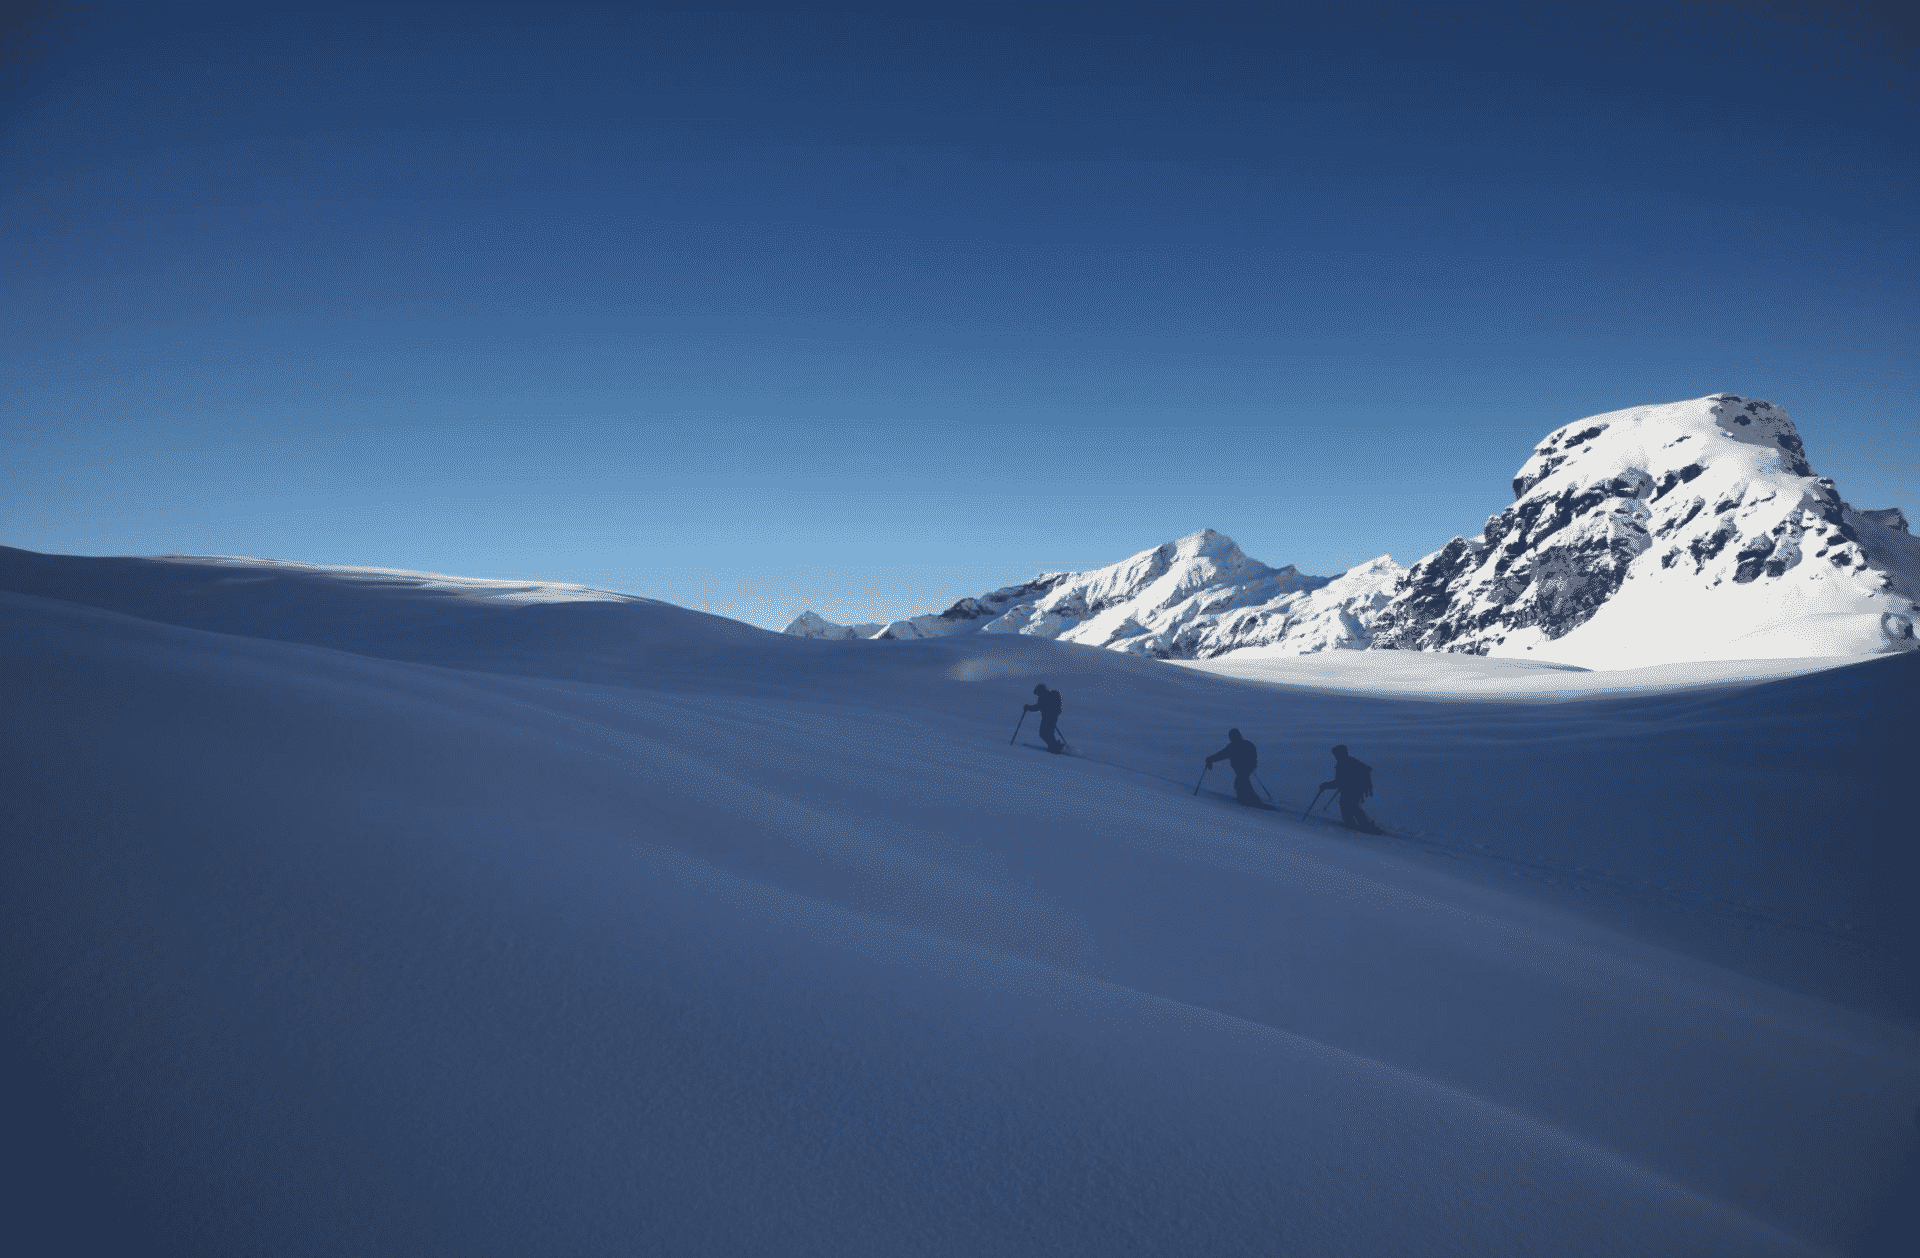 4-day freeride and freerando tour in Gressoney